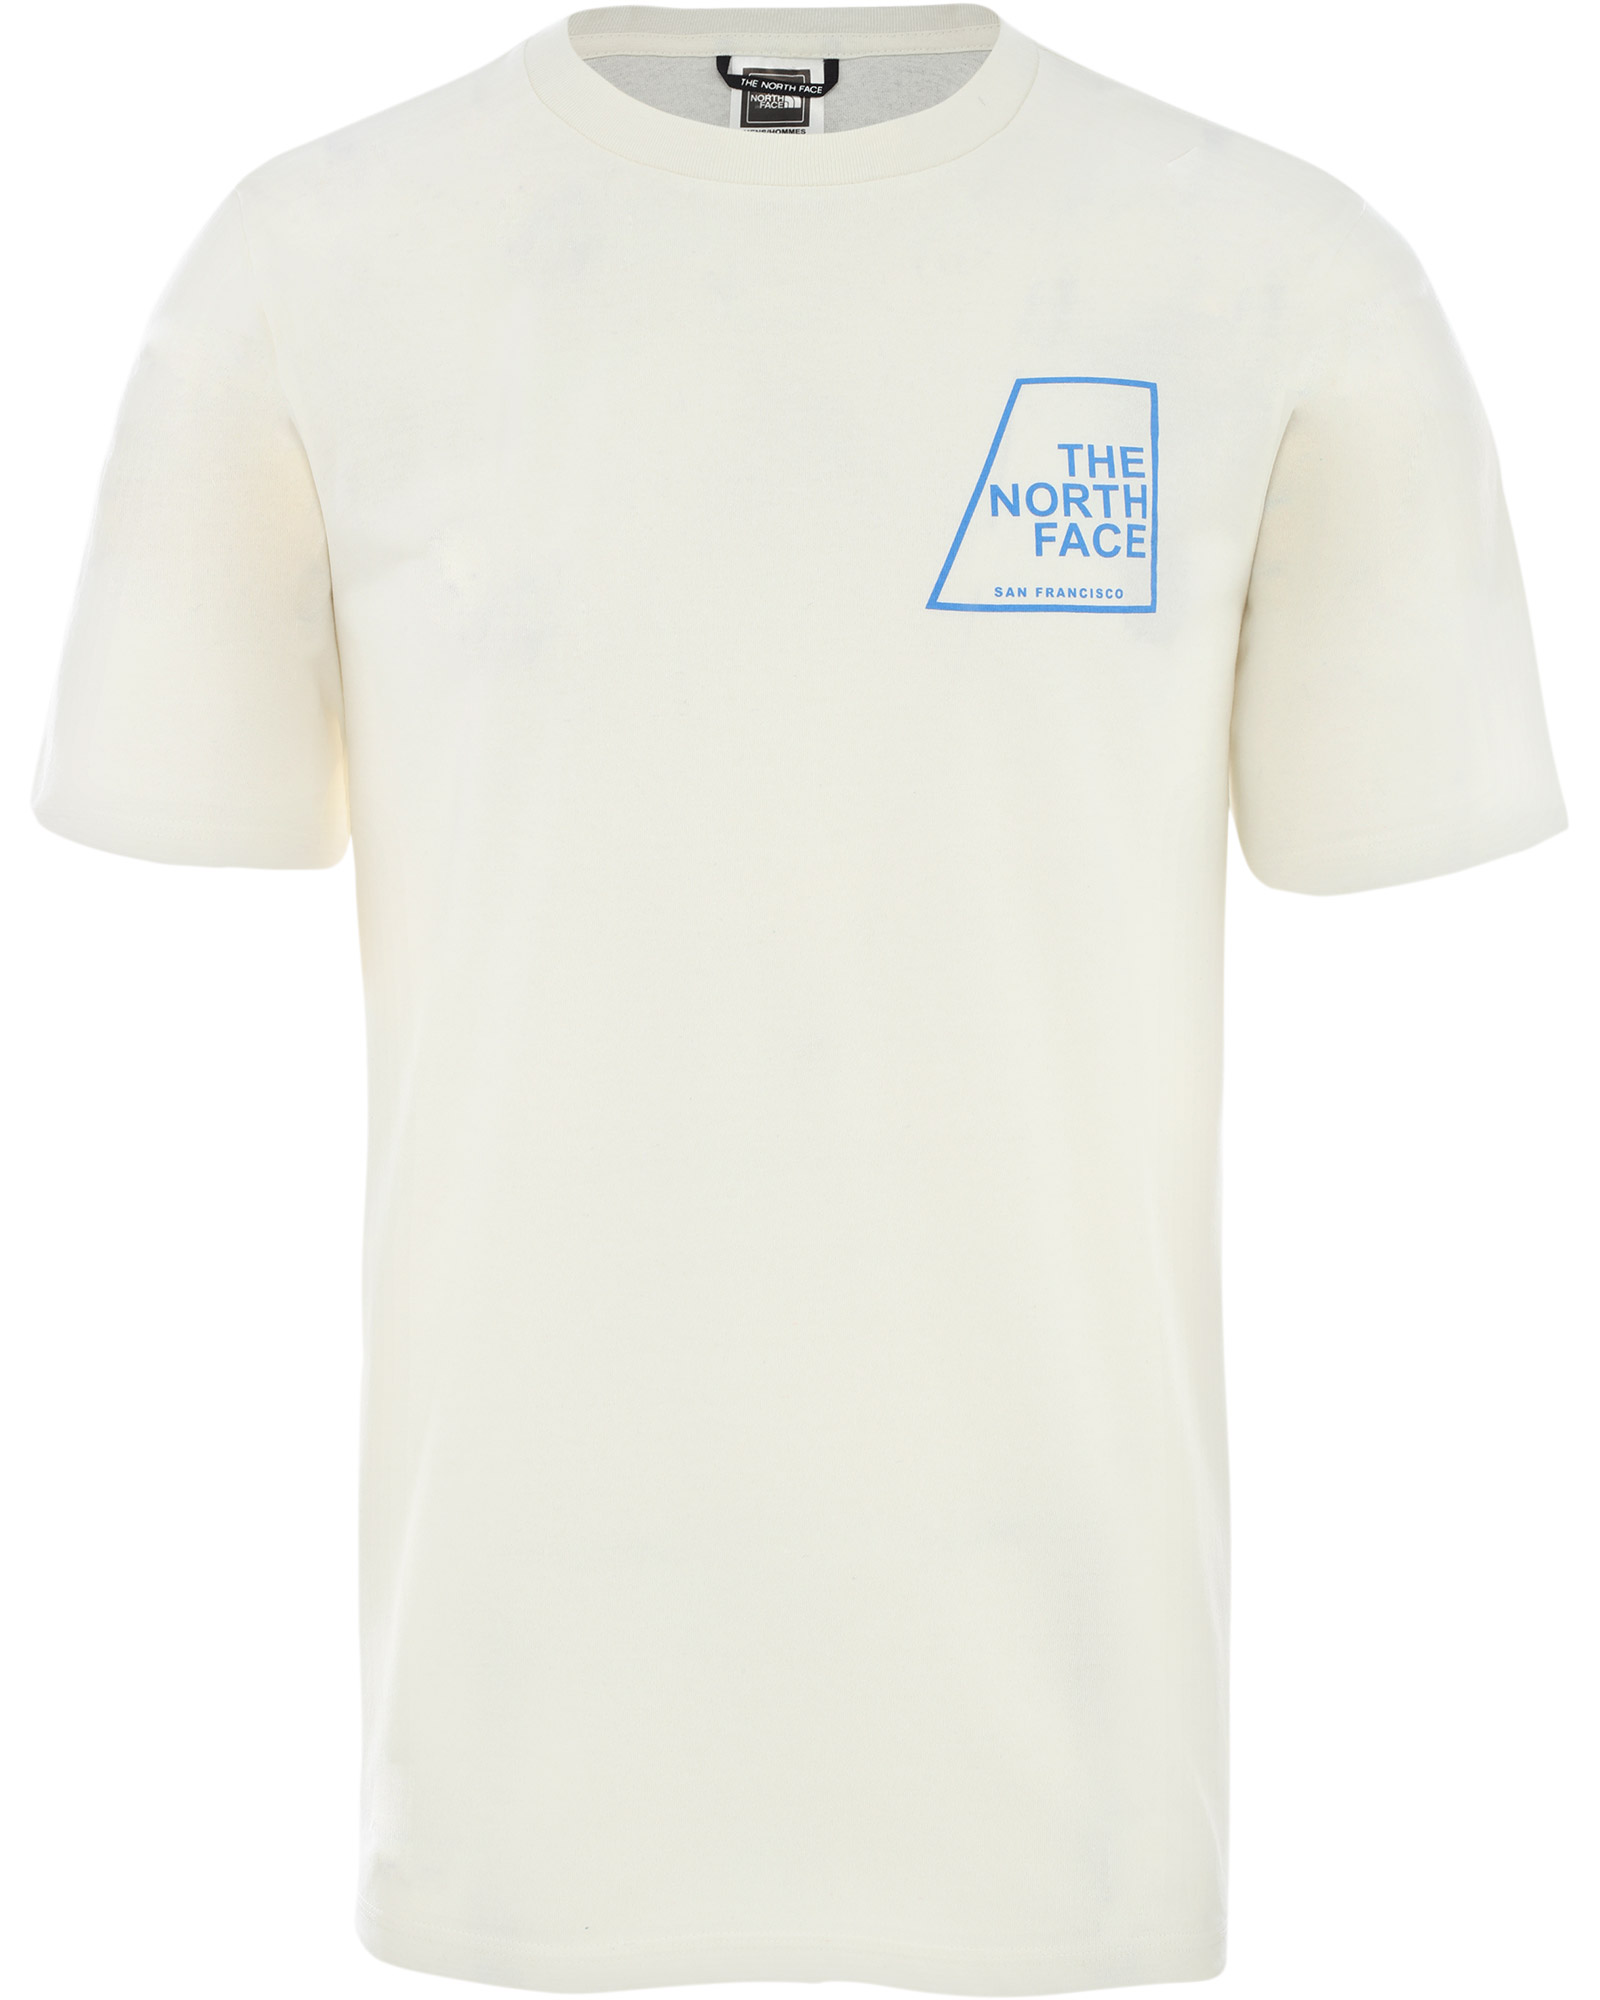 The North Face Men's Short Sleeve Recover T-Shirt 0